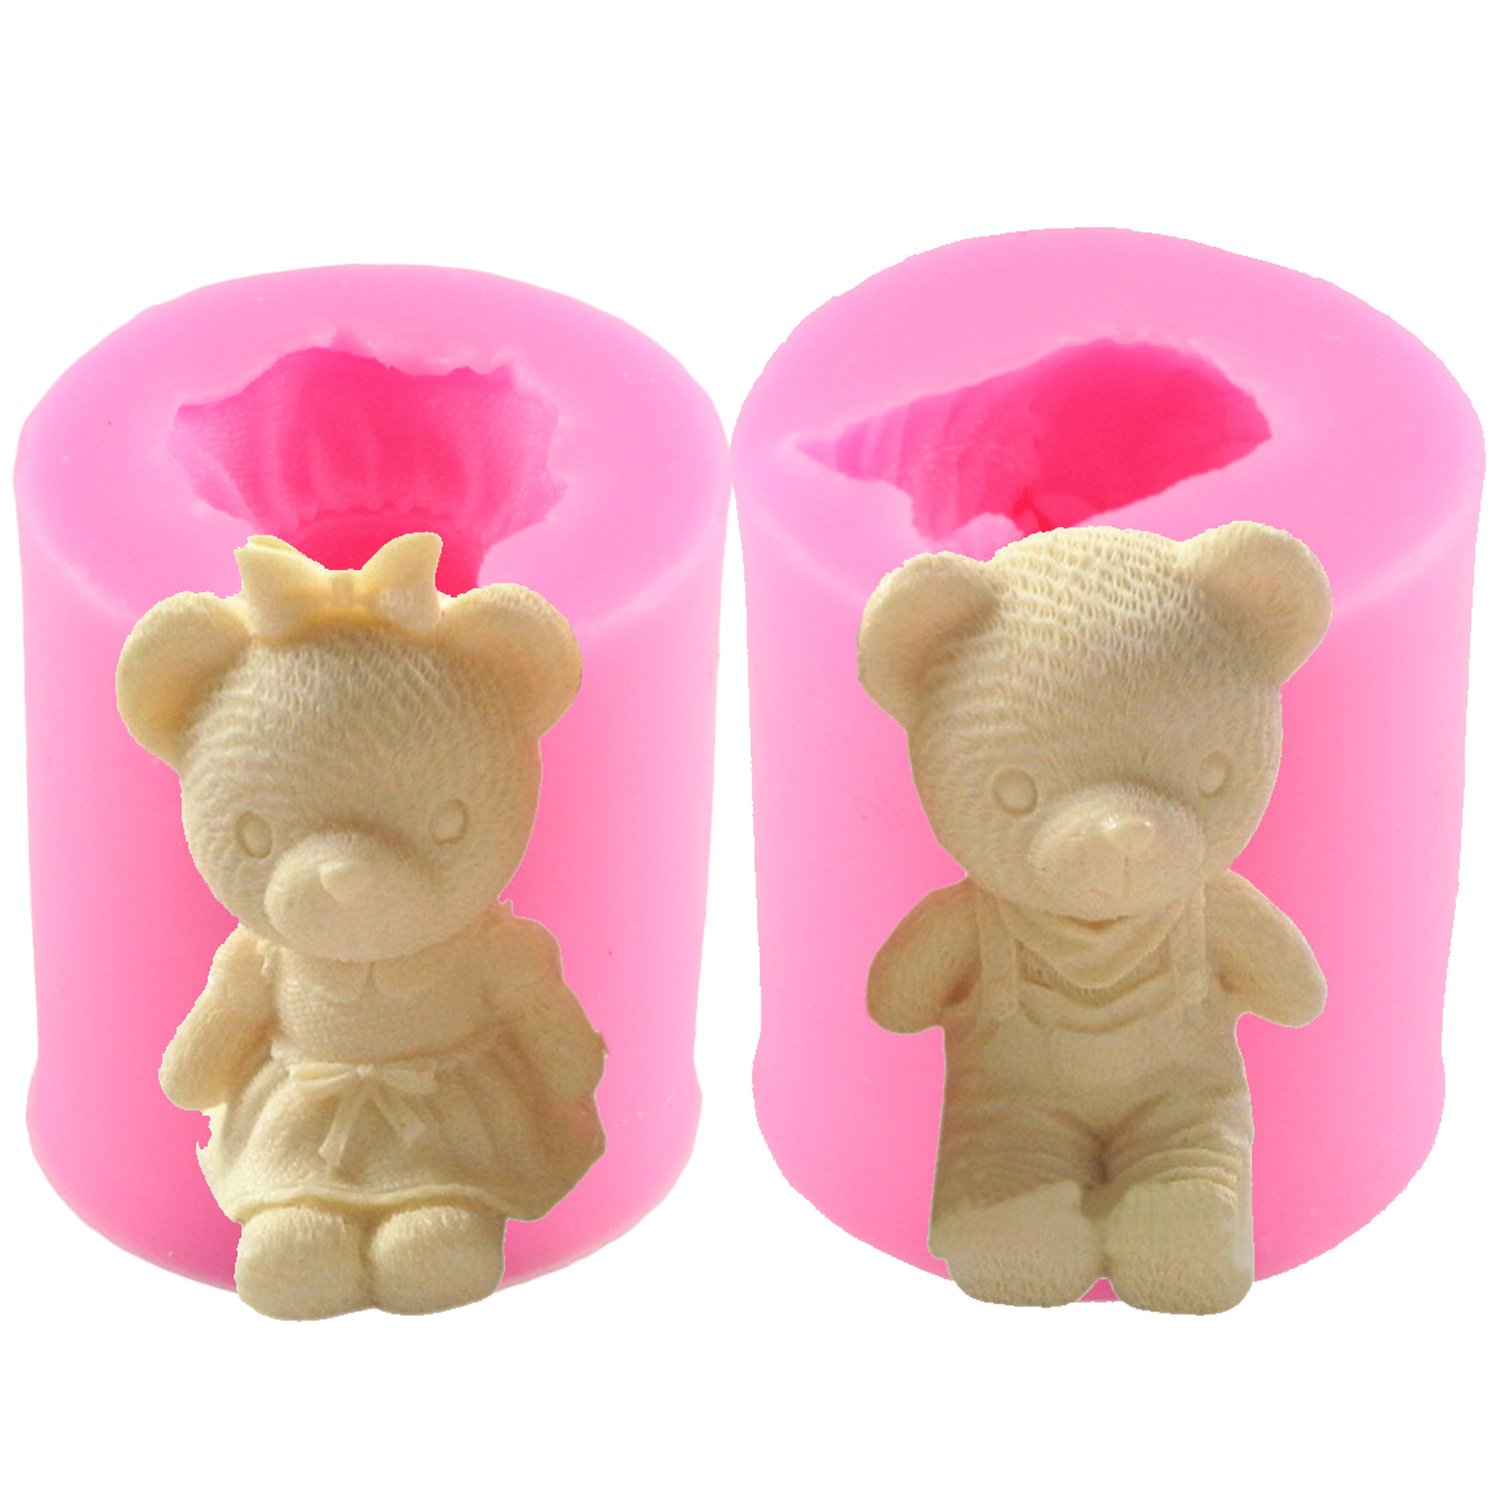 Mujiang Bear Silicone 3D DIY Soap Candle Making Molds Set Of 2